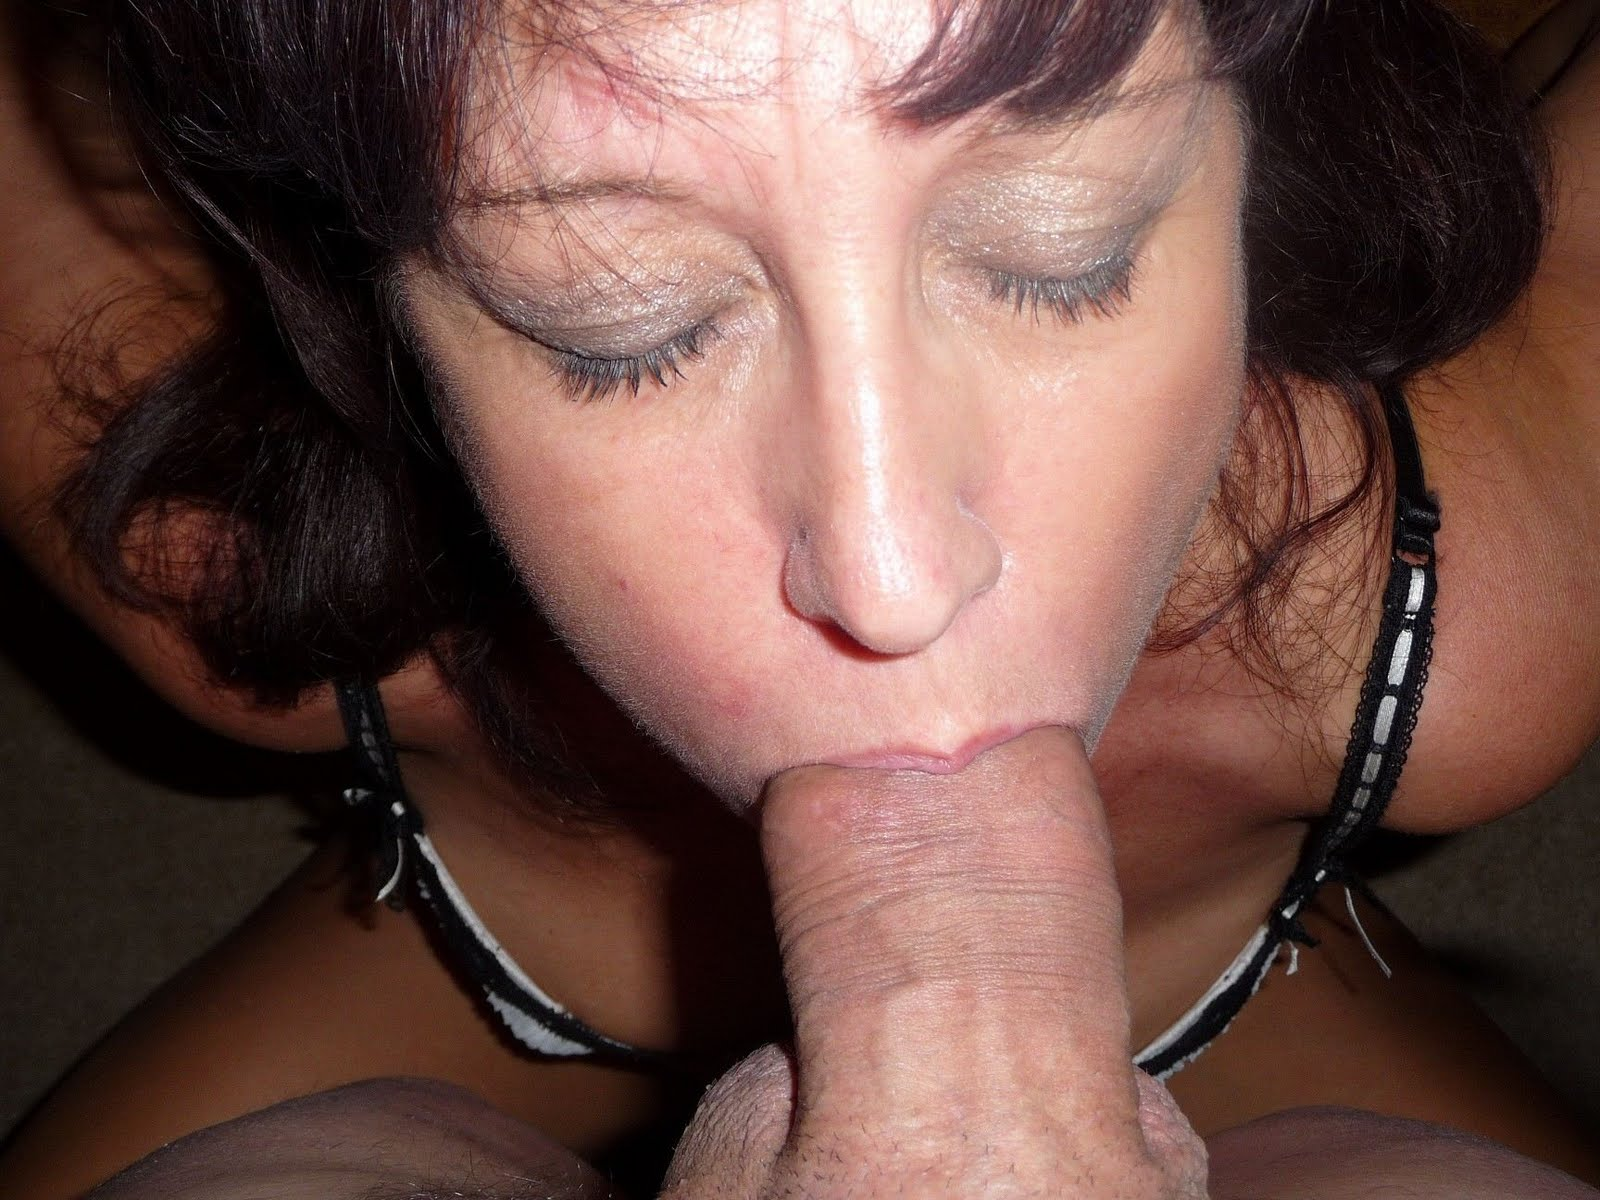 Blowjob for an a share your